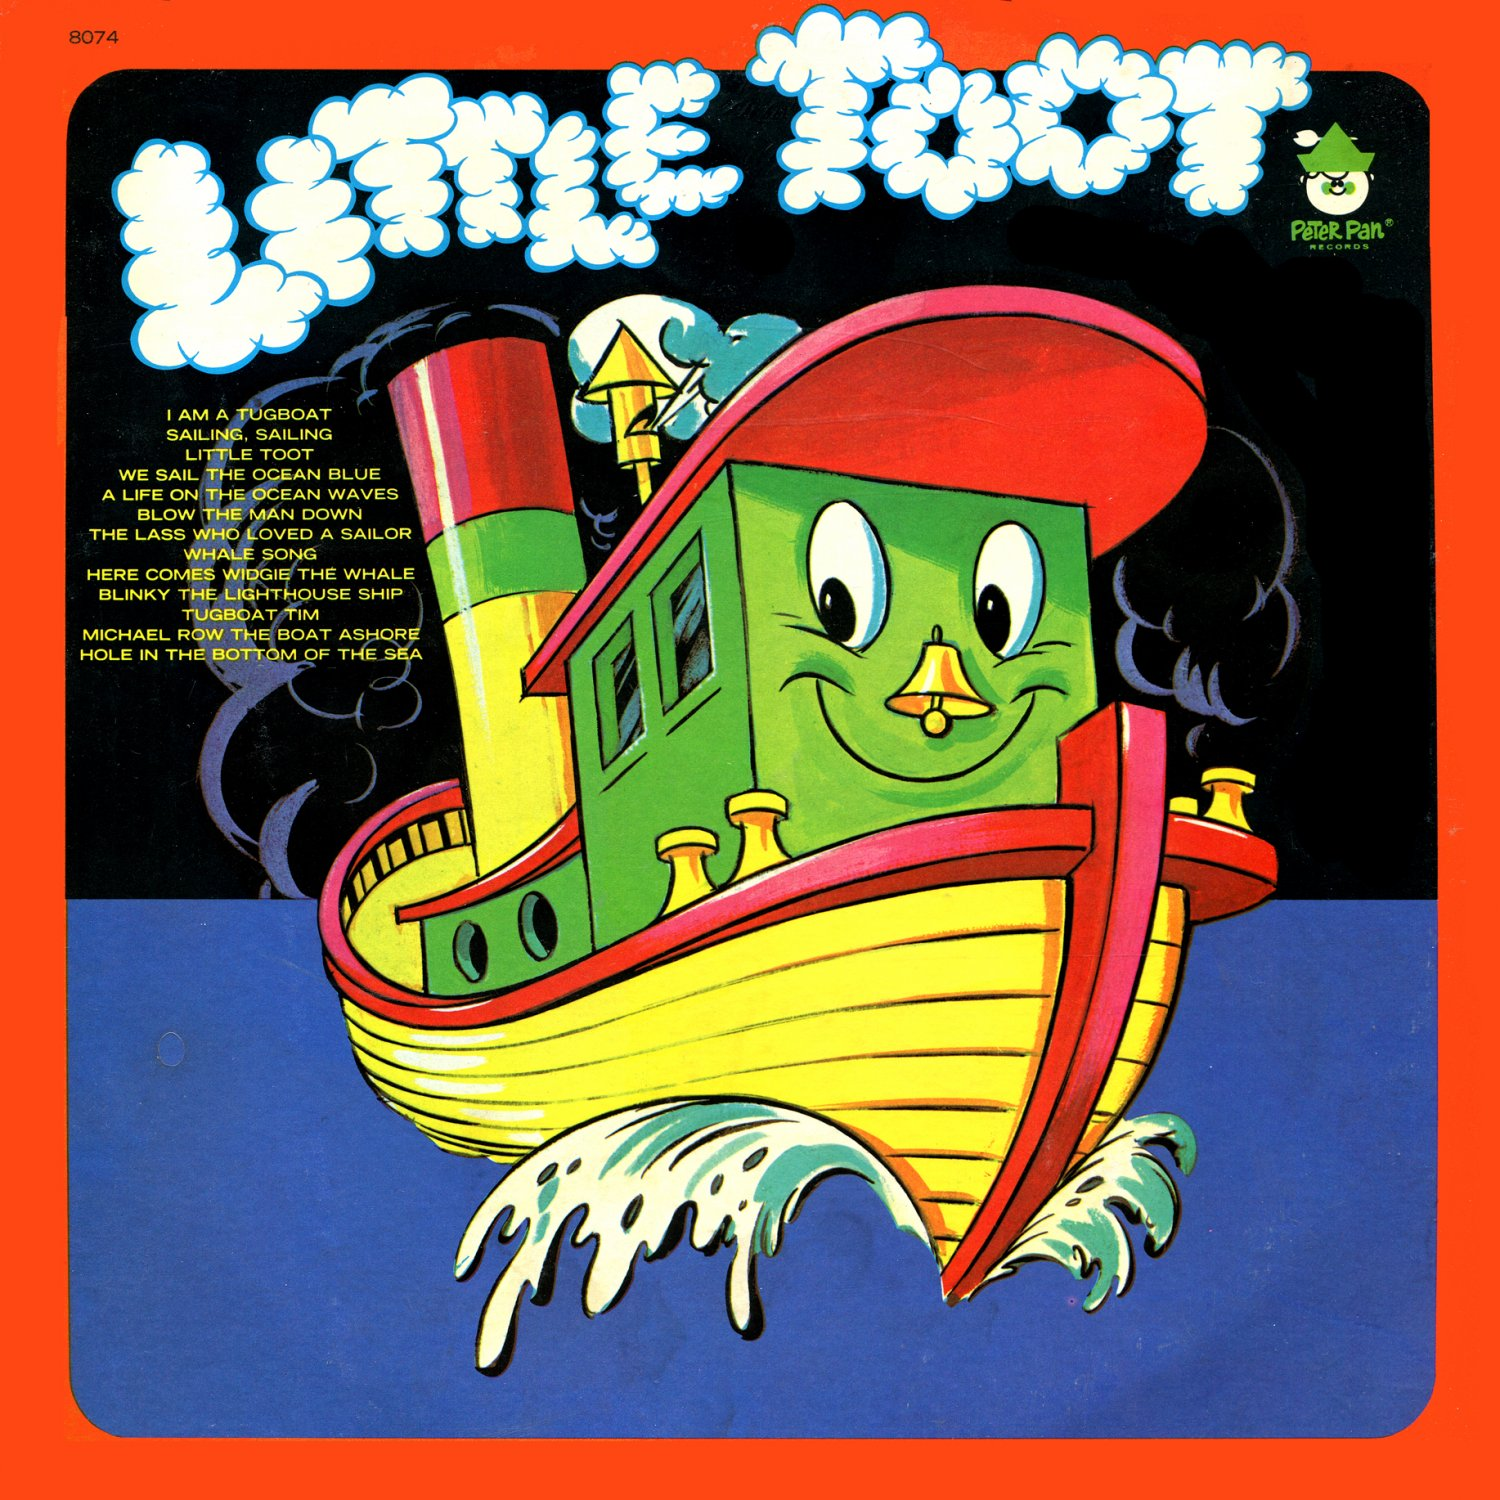 Little Toot - Children's Song Collection (Peter Pan Records) LP/CD